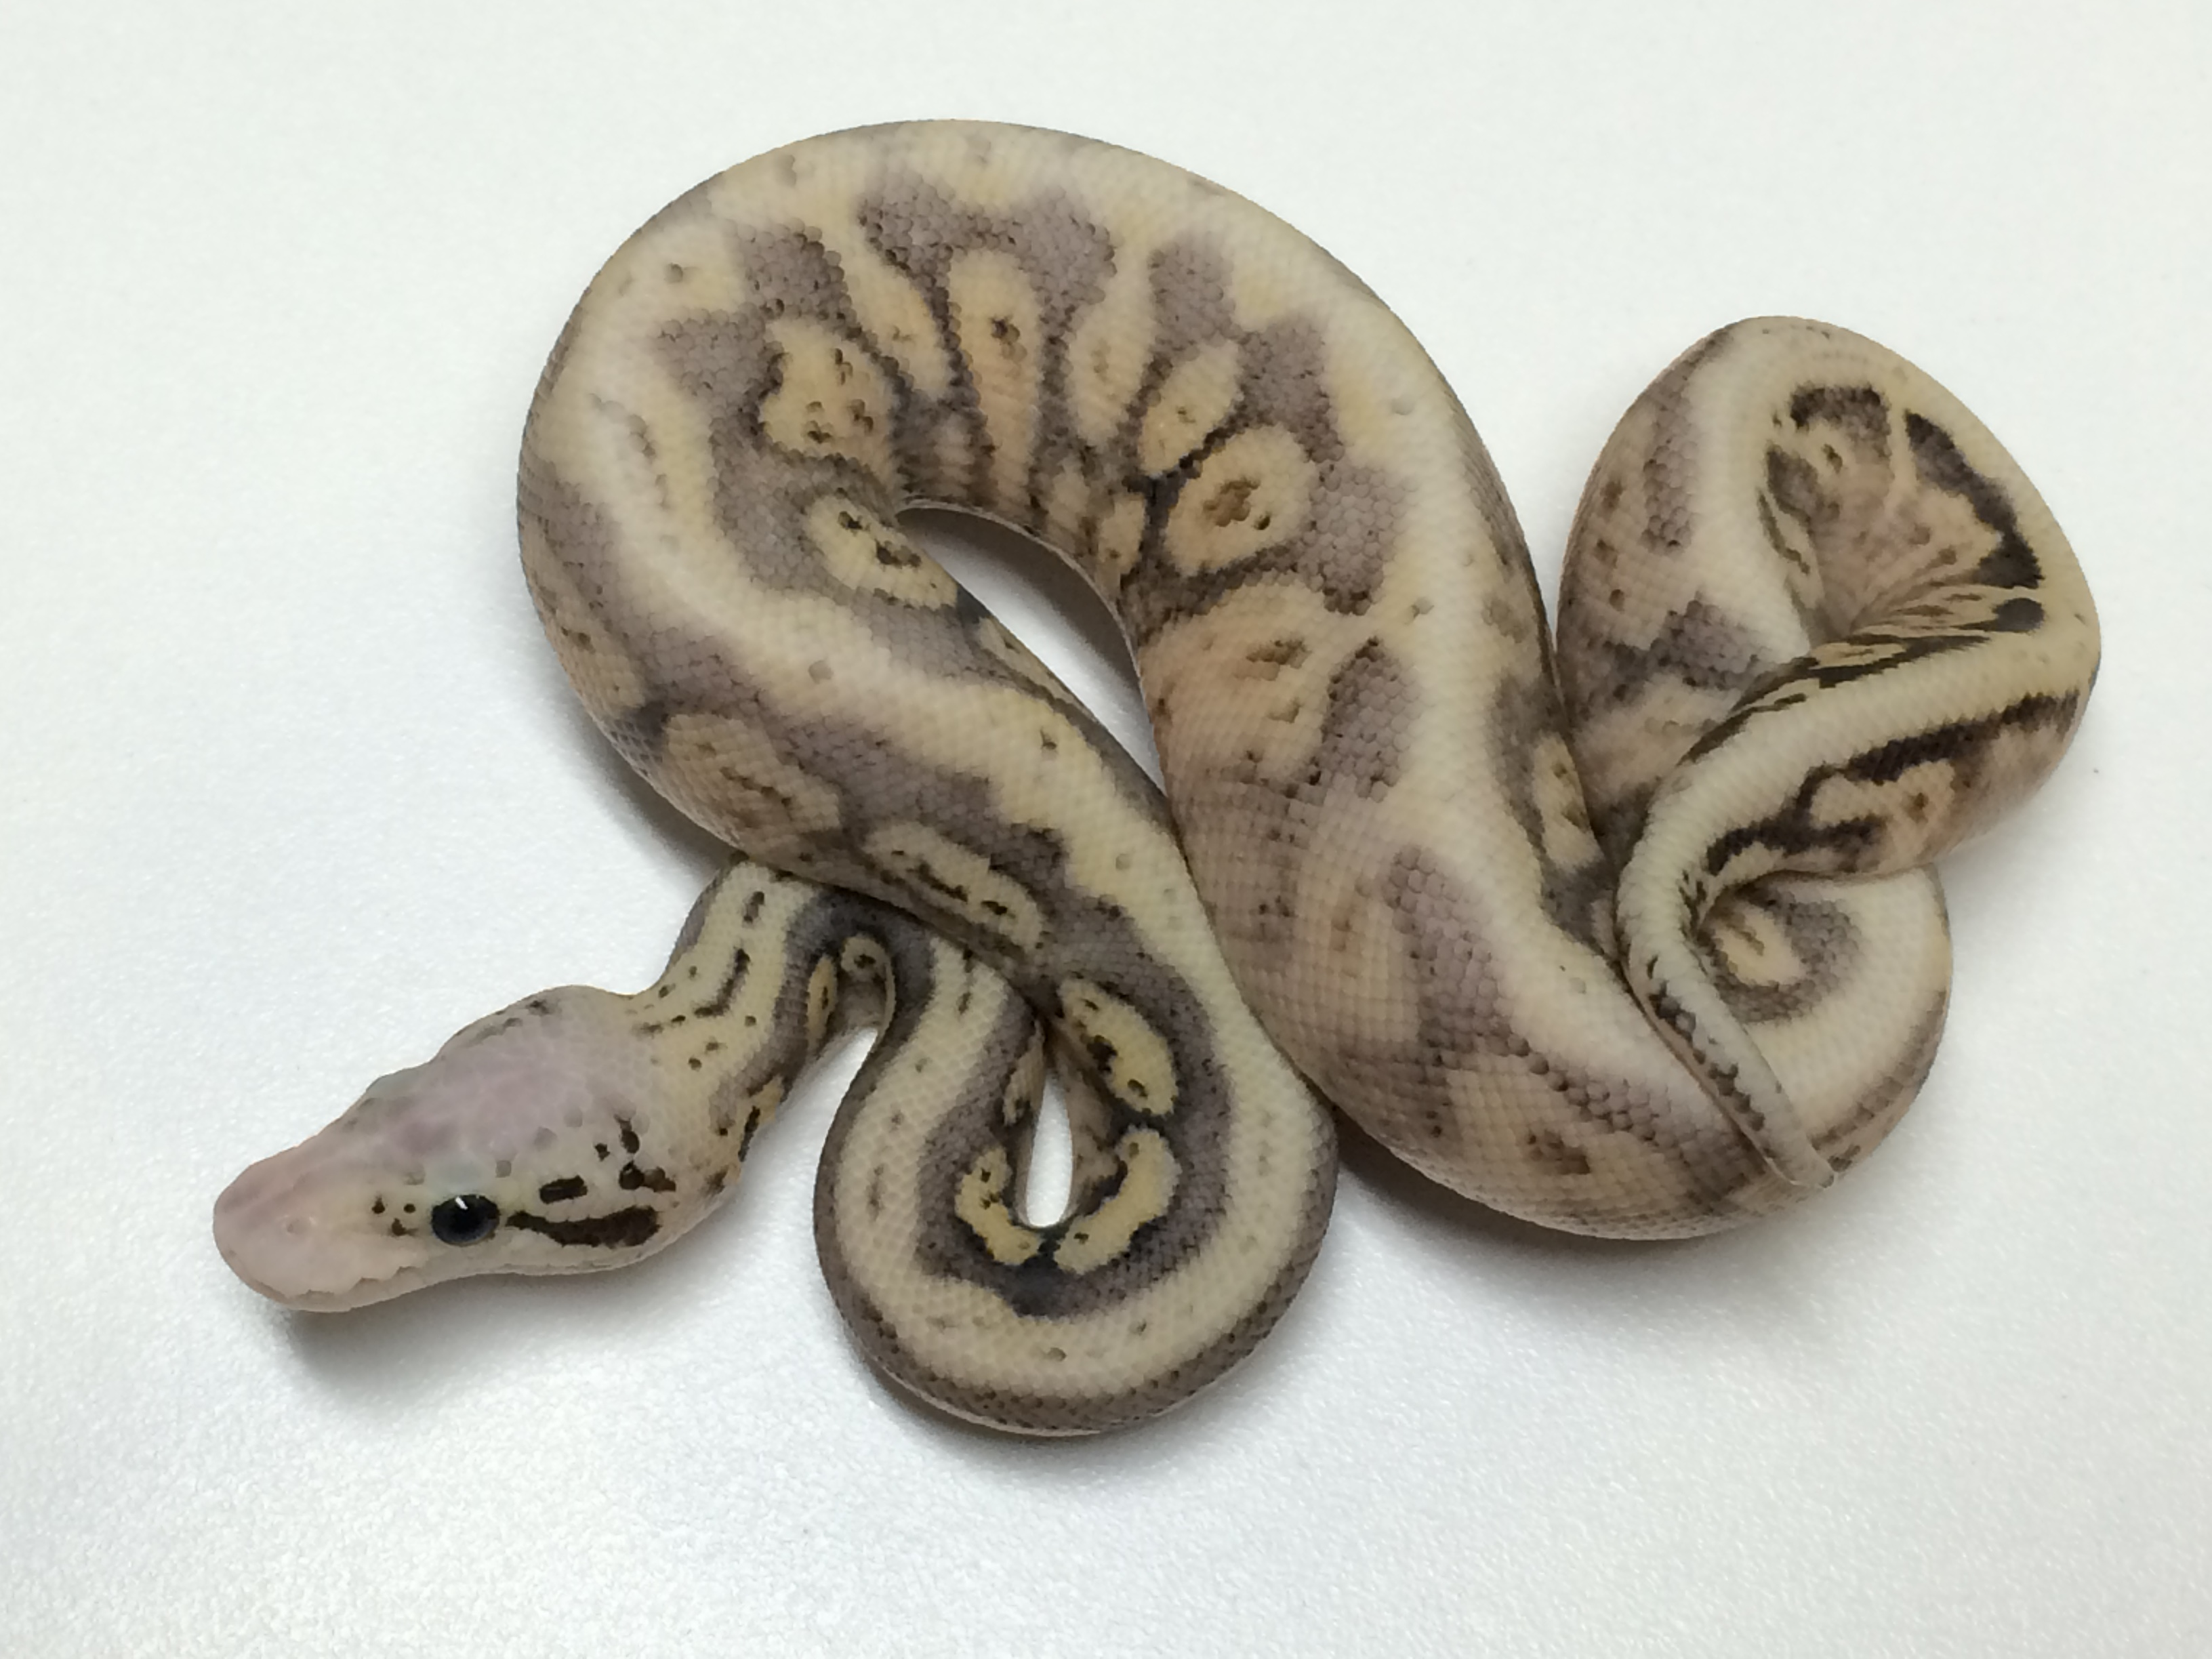 Baby Ultimate Ball Python